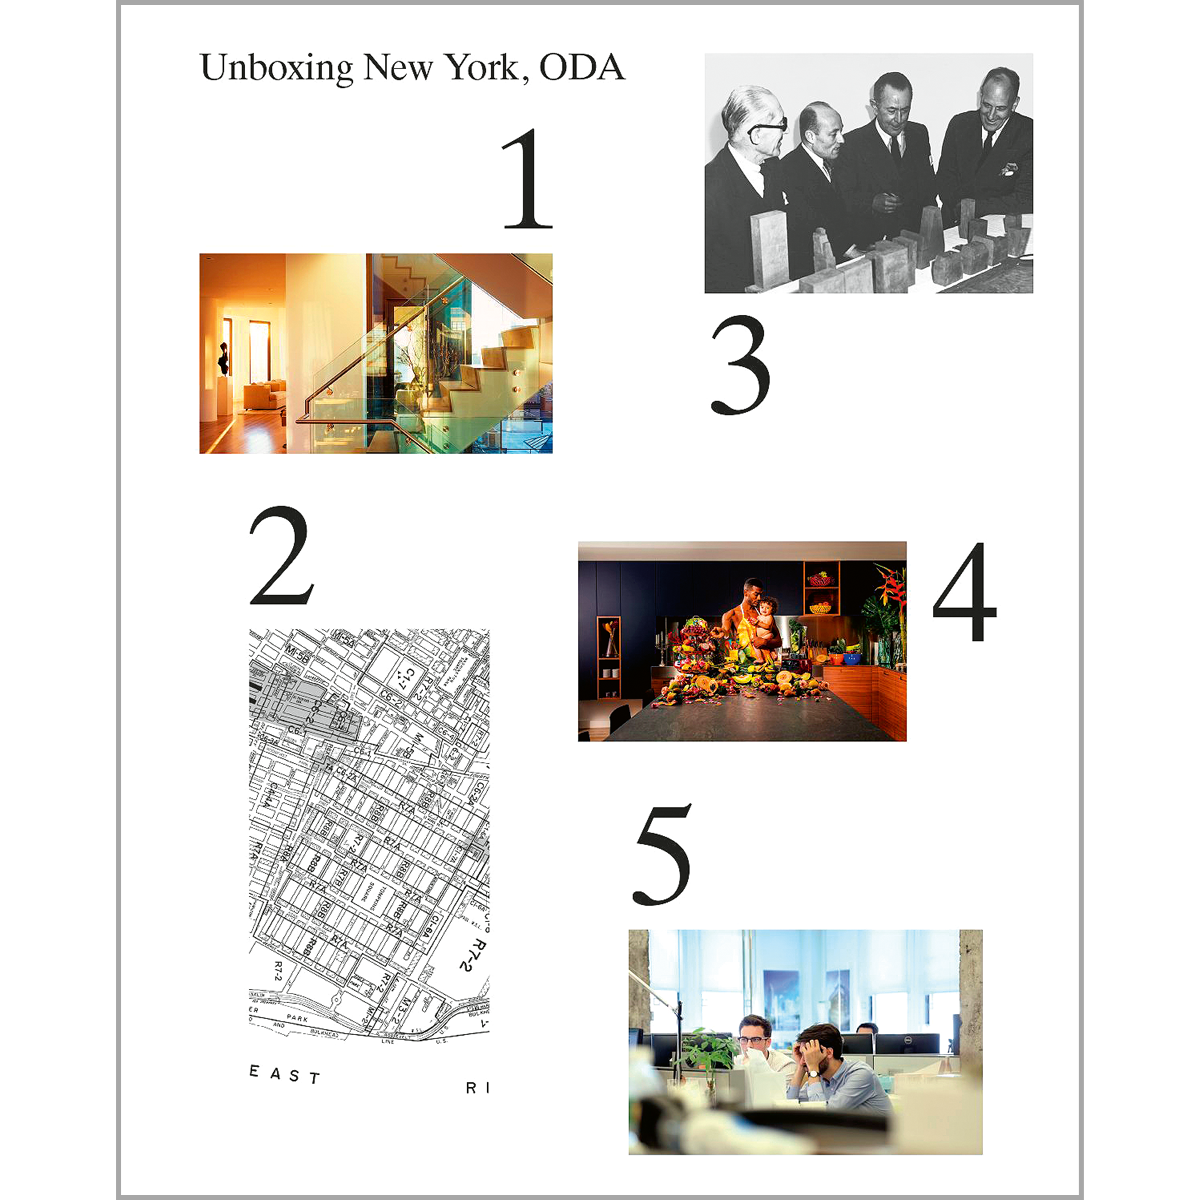 Unboxing New York, ODA